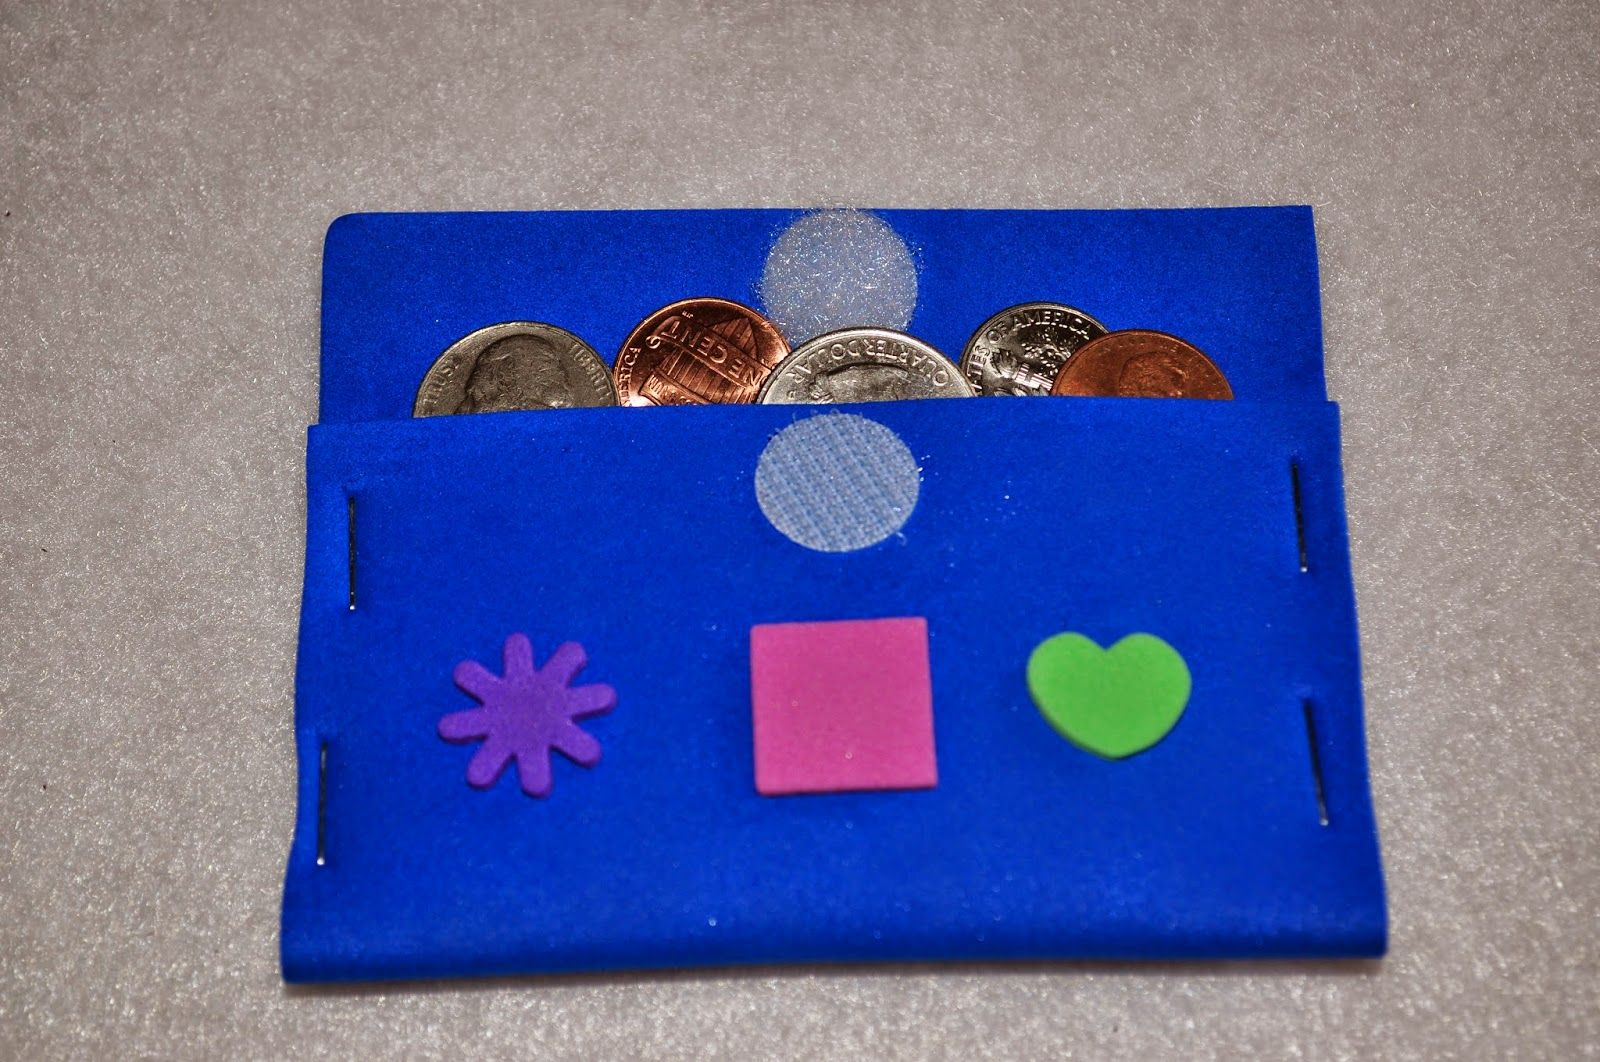 A little money pouch craft for kids to keep their offering